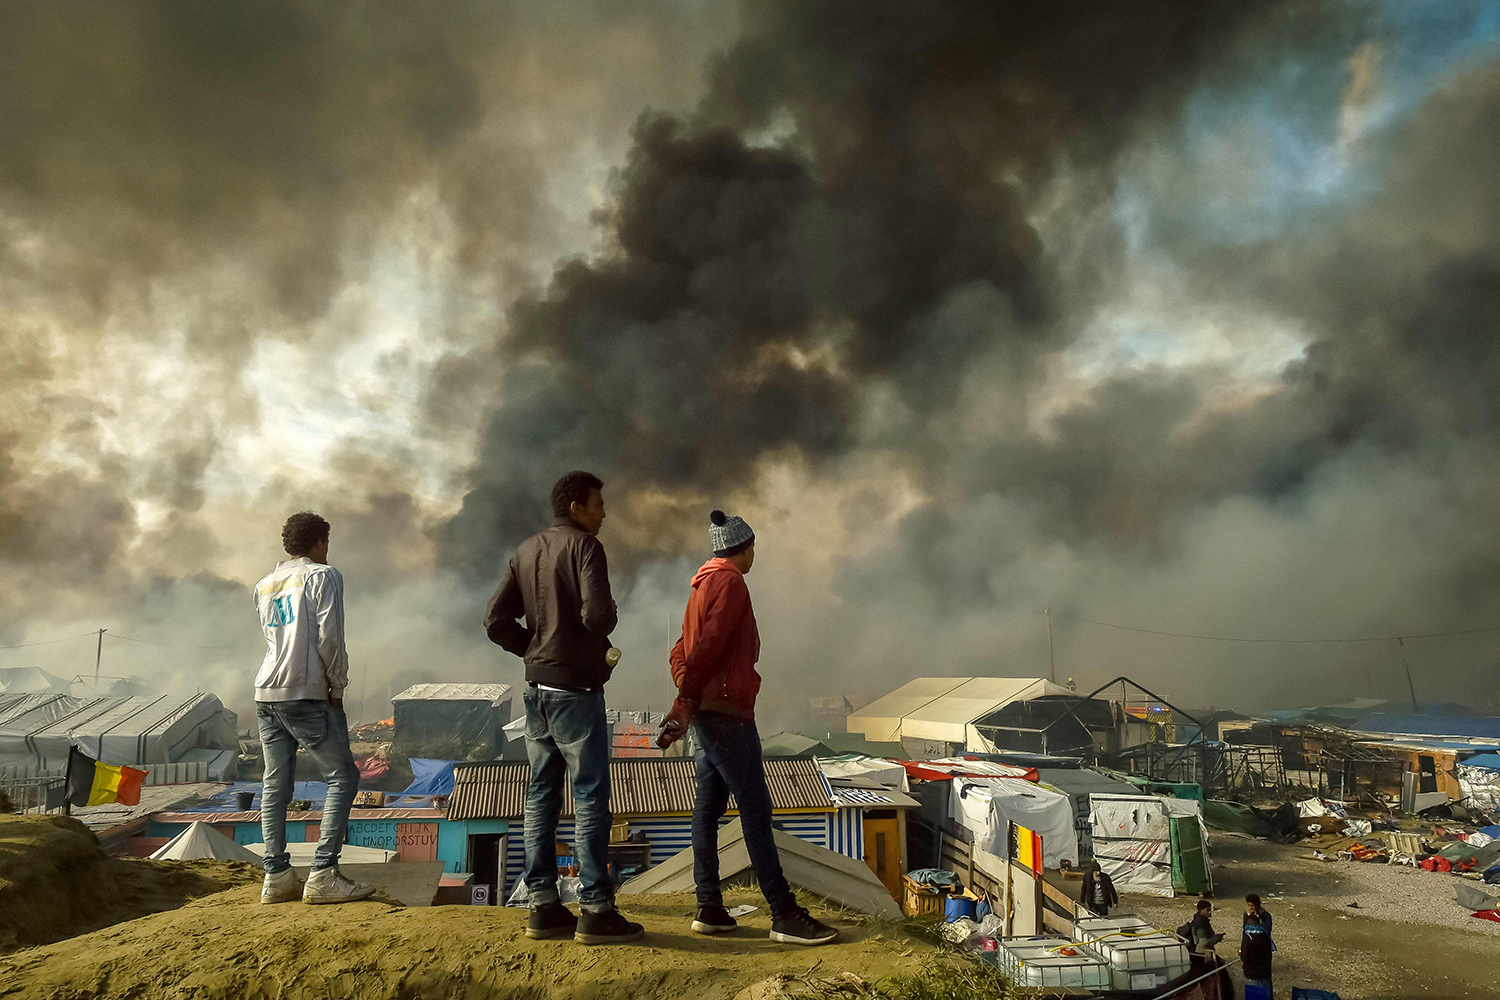 """TOPSHOT - Migrants stand on a hill overlooking the """"Jungle"""" migrant camp in Calais, northern France, as smoke rises on October 26, 2016 during a massive operation to clear the squalid settlement where 6,000-8,000 people have been living in dire conditions. Fresh fires broke out on October 26 in the """"Jungle"""" migrant camp on the second day of operations to dismantle the squalid settlement in northern France. Smoke billowed over the sprawling camp near Calais for a second day amid fears that abandoned gas cylinders could explode. / AFP PHOTO / PHILIPPE HUGUEN / TT / kod 444"""